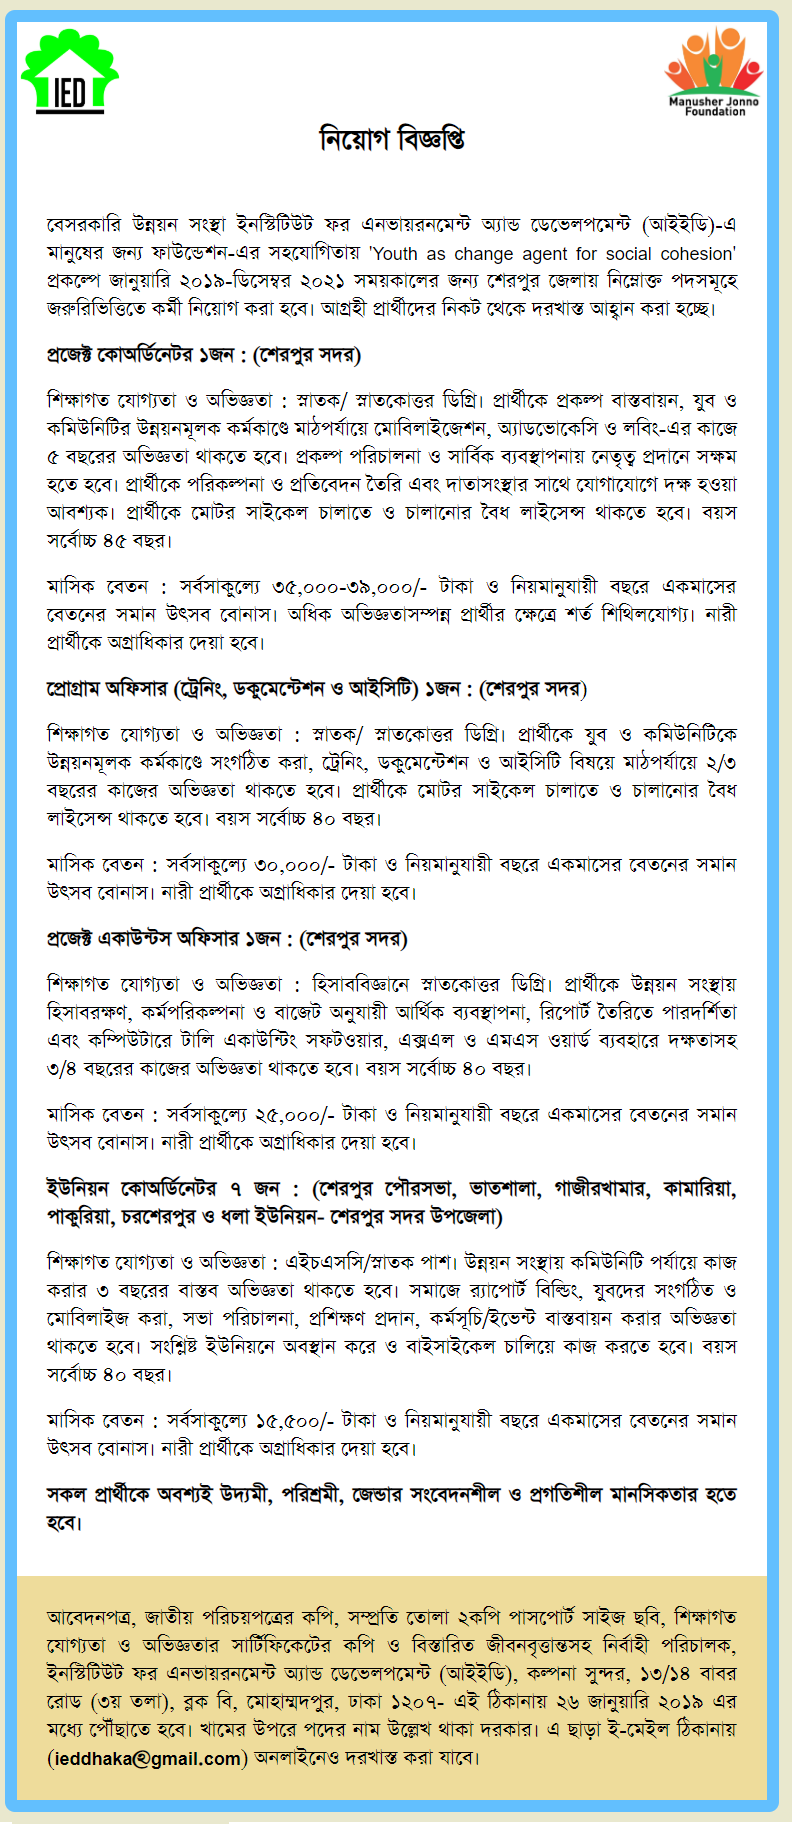 Institute for Environment and Development Job Circular 2019